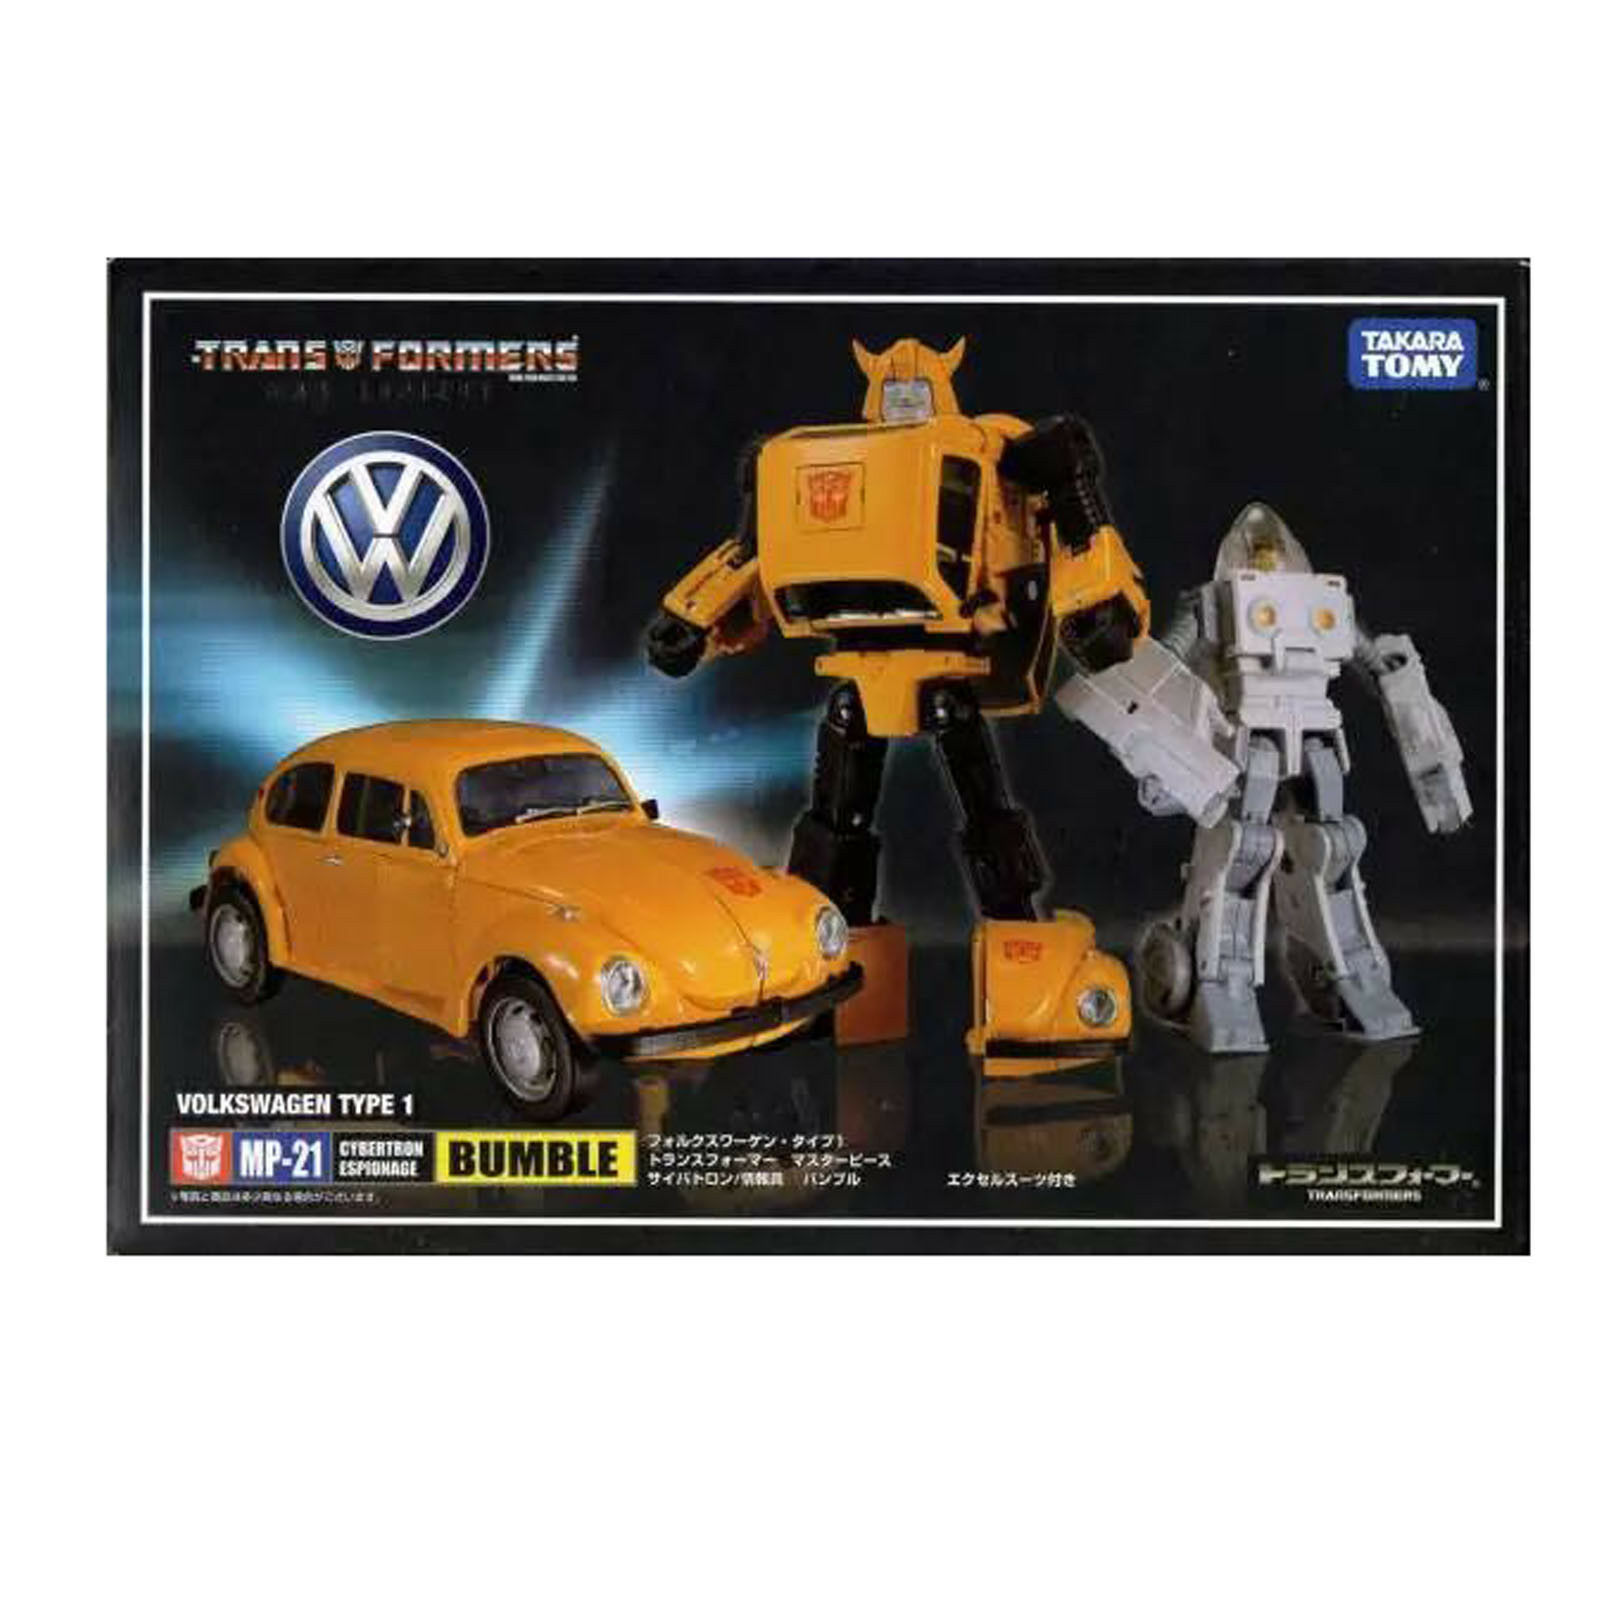 MP-21 MP21 BUMBLE Transformers Masterpiece Autobots Action Figure Christmas Toys